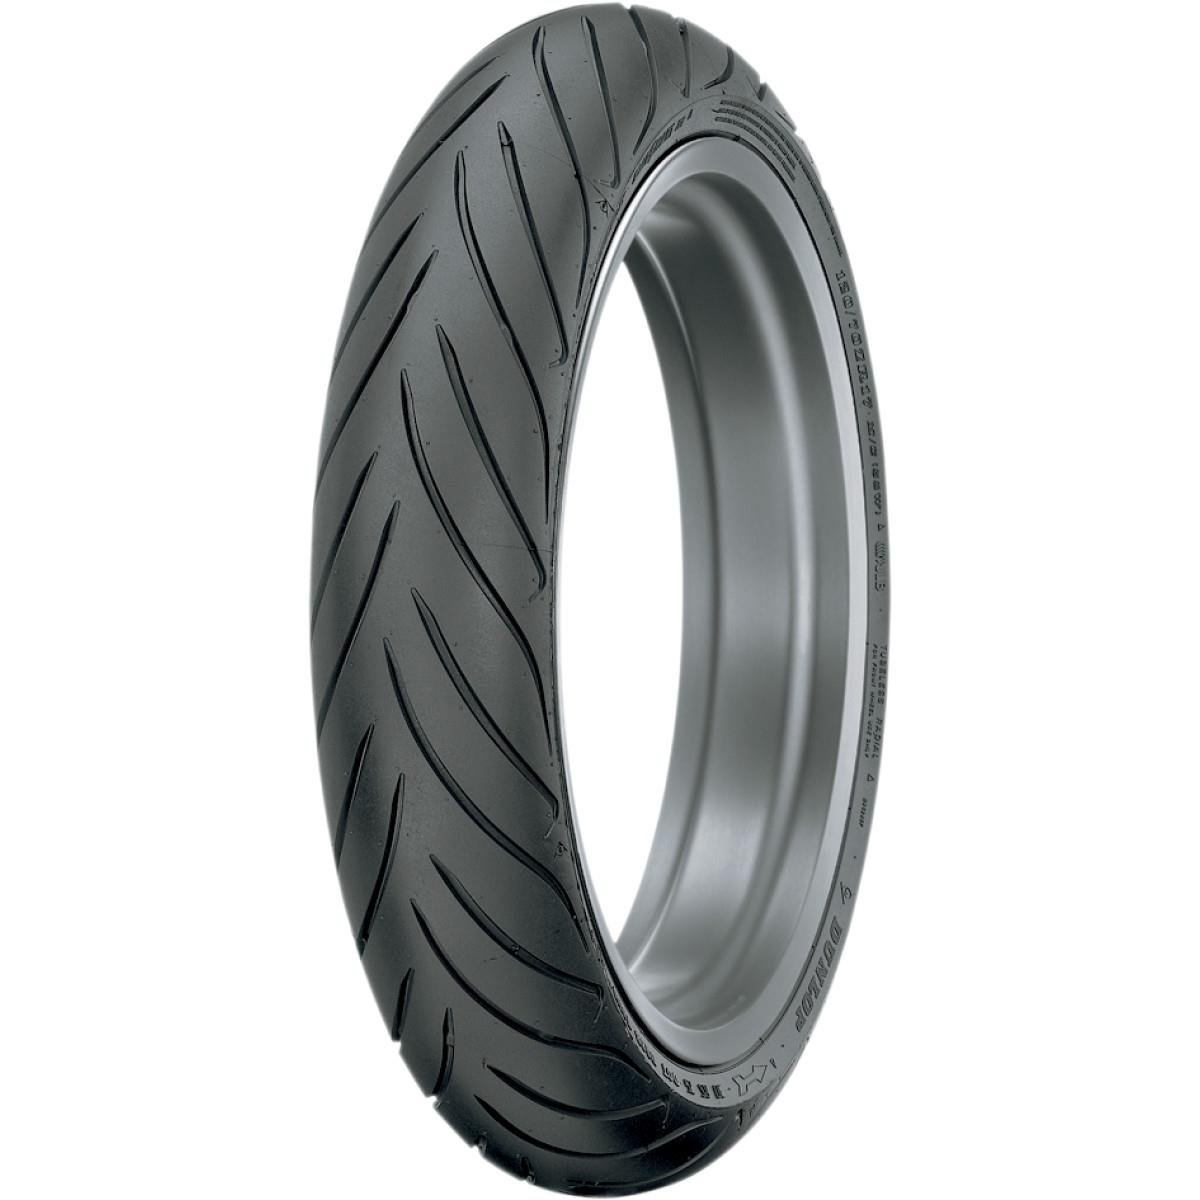 Dunlop Roadsmart II Tire - Front - 120/60ZR-17 , Position: Front, Tire Size: 120/60-17, Rim Size: 17, Load Rating: 55, Speed Rating: (W), Tire Type: Street, Tire Construction: Radial, Tire Application: Sport 30RS40